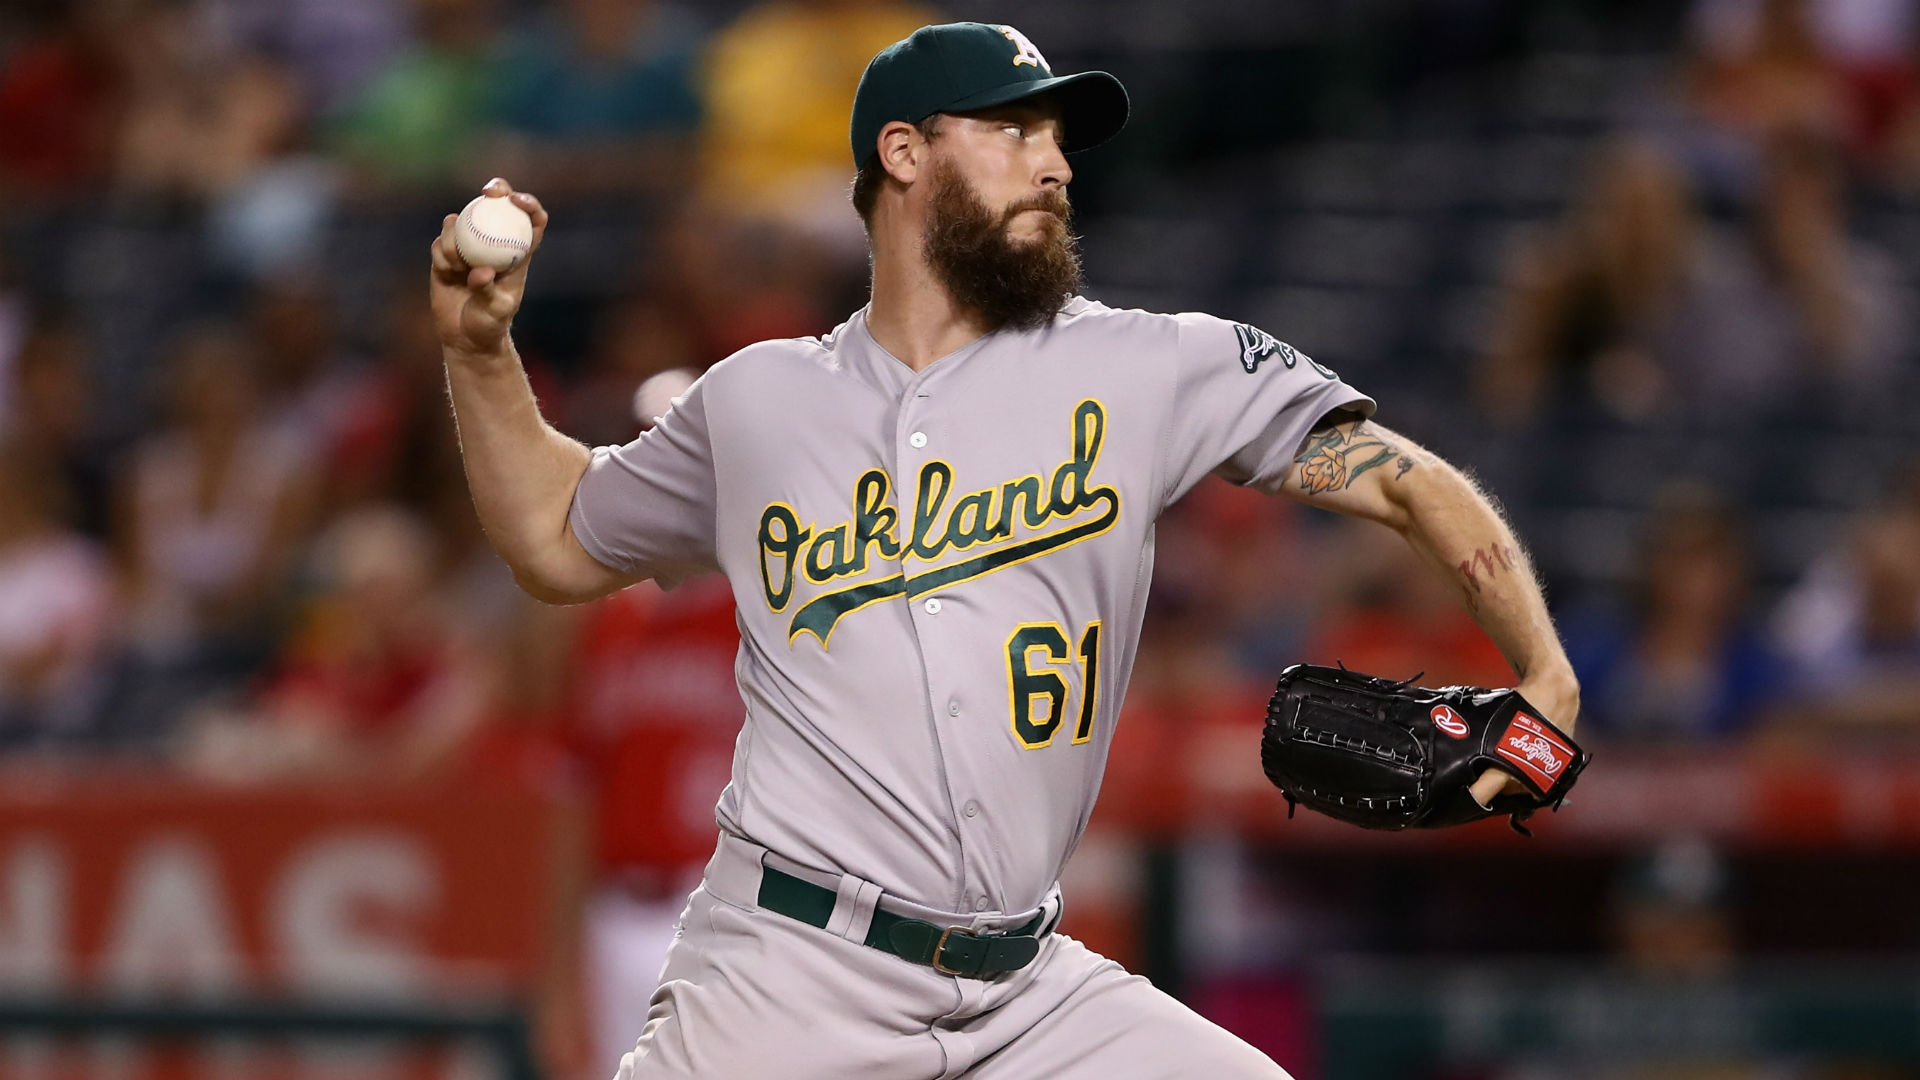 Blue Jays reportedly agree to deal with reliever John Axford